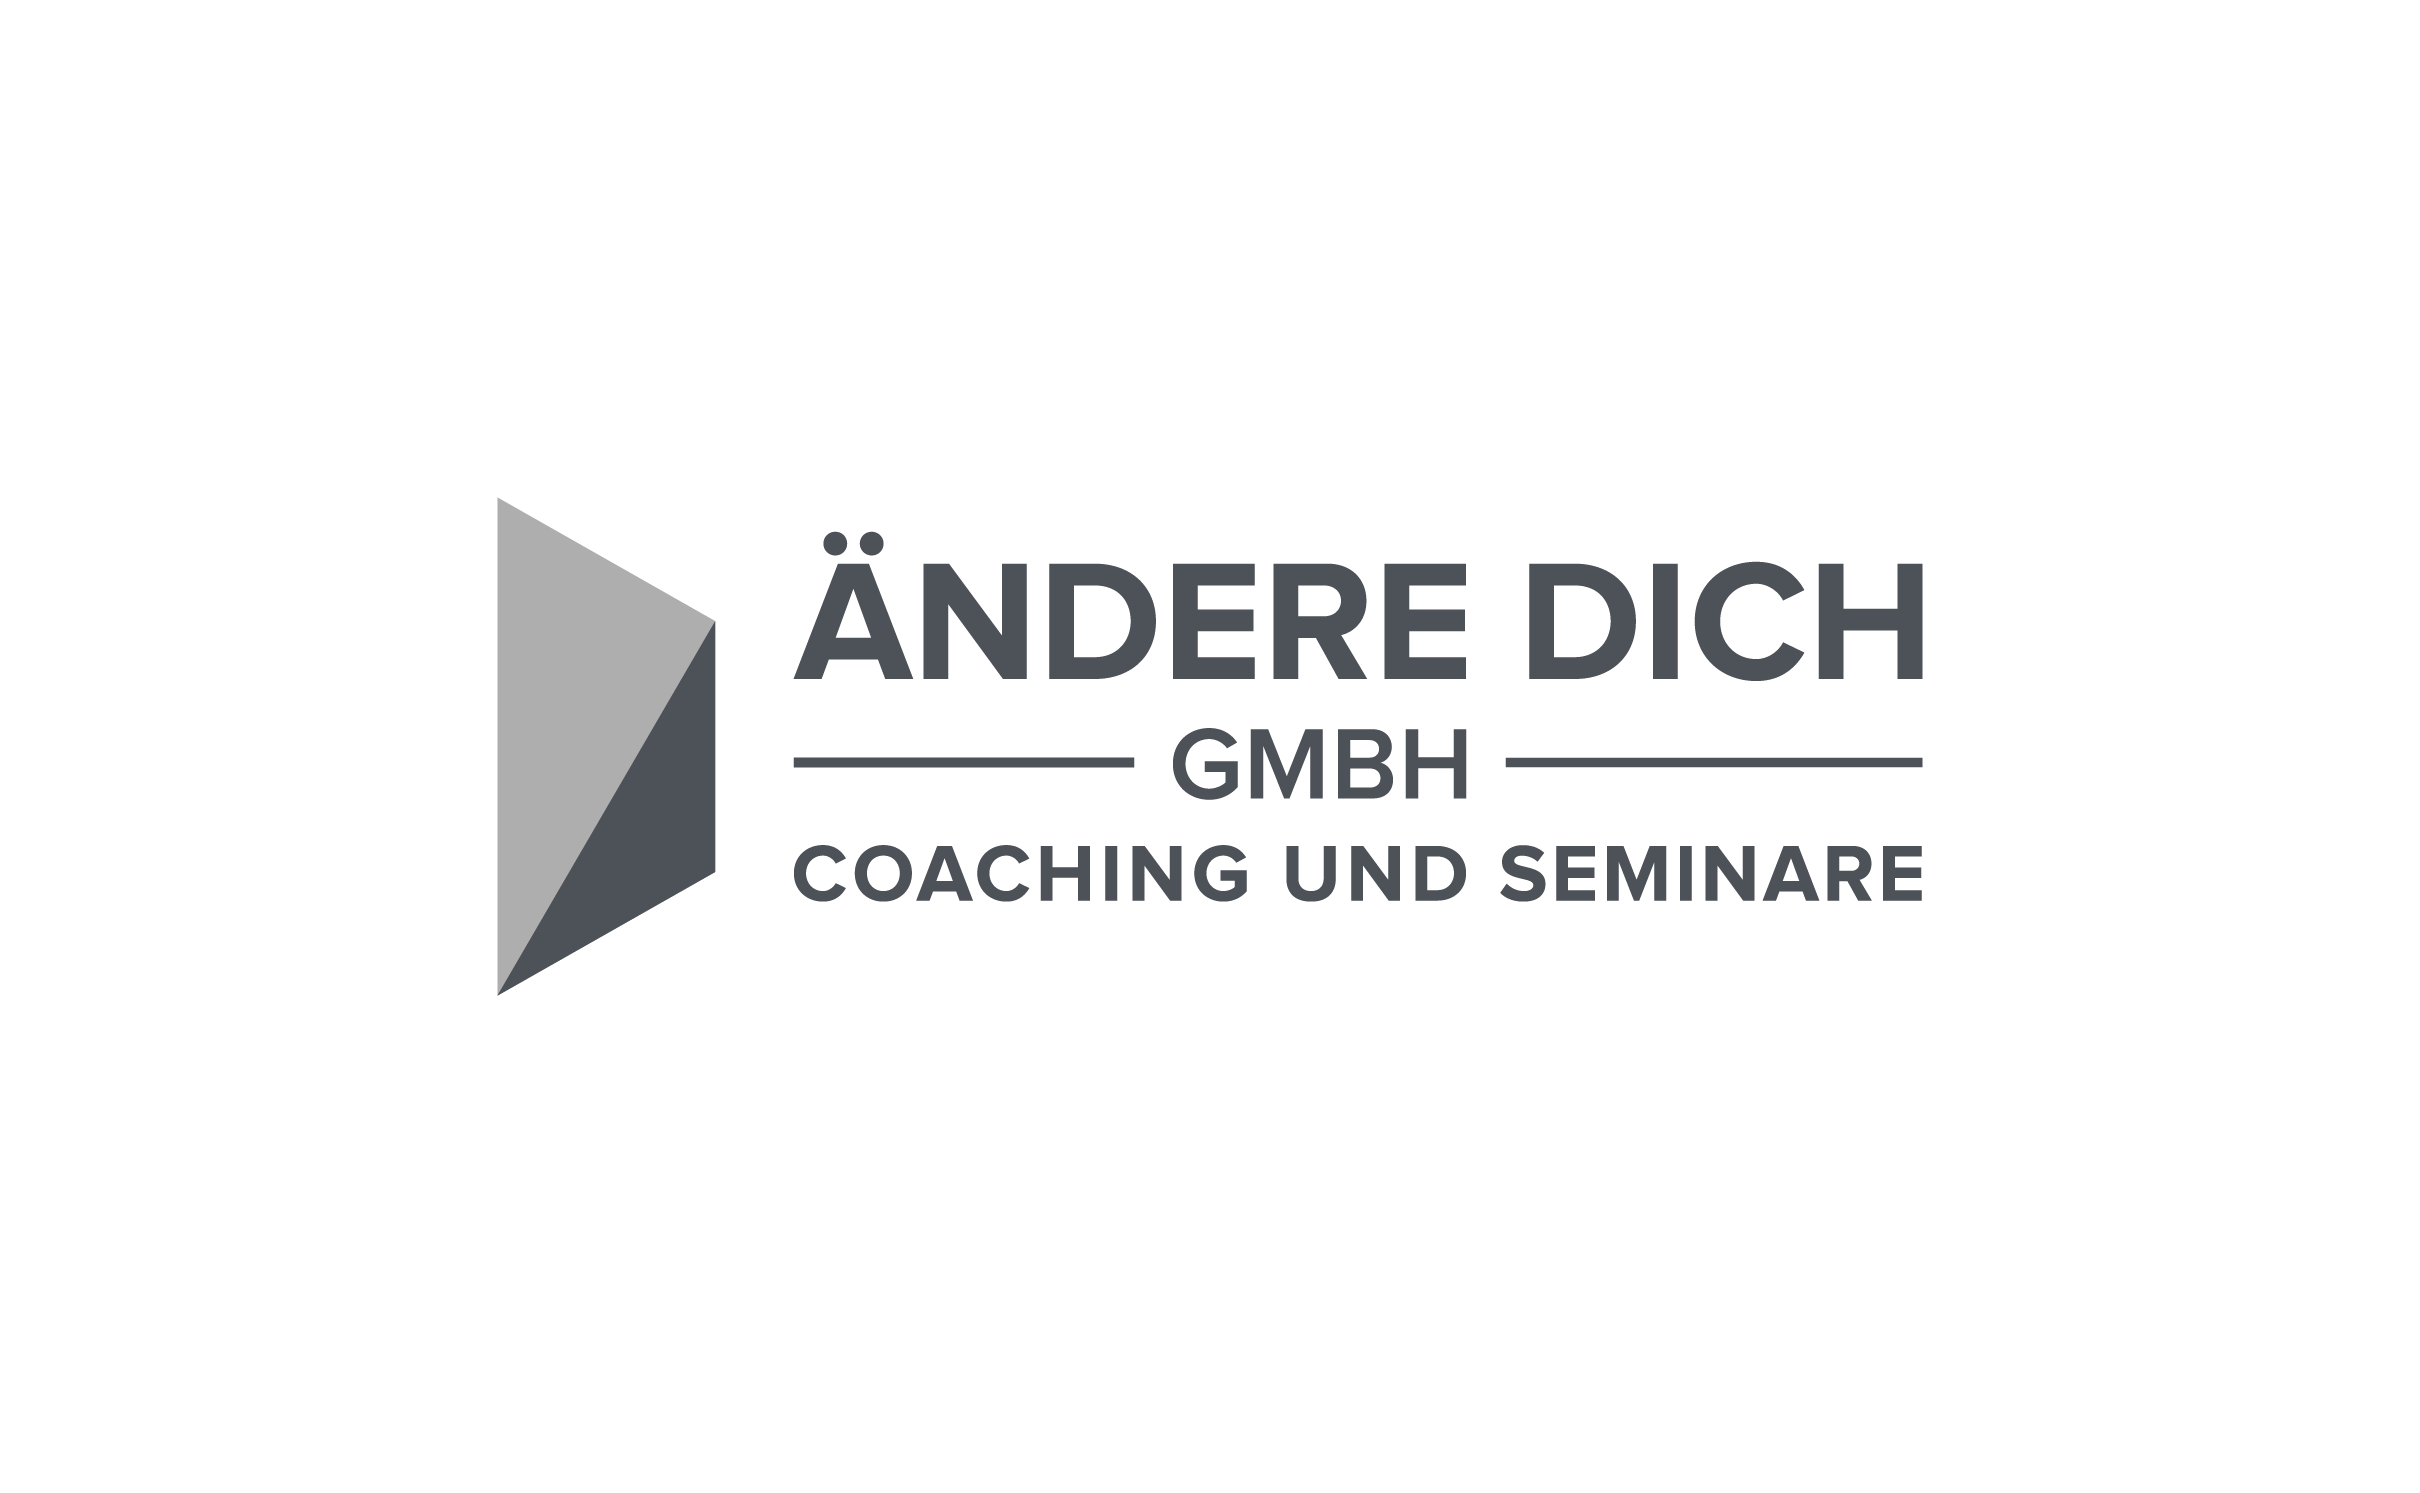 The Ändere Dich GmbH (Change Yourself Company) needs an energetic logo, which makes you curious.